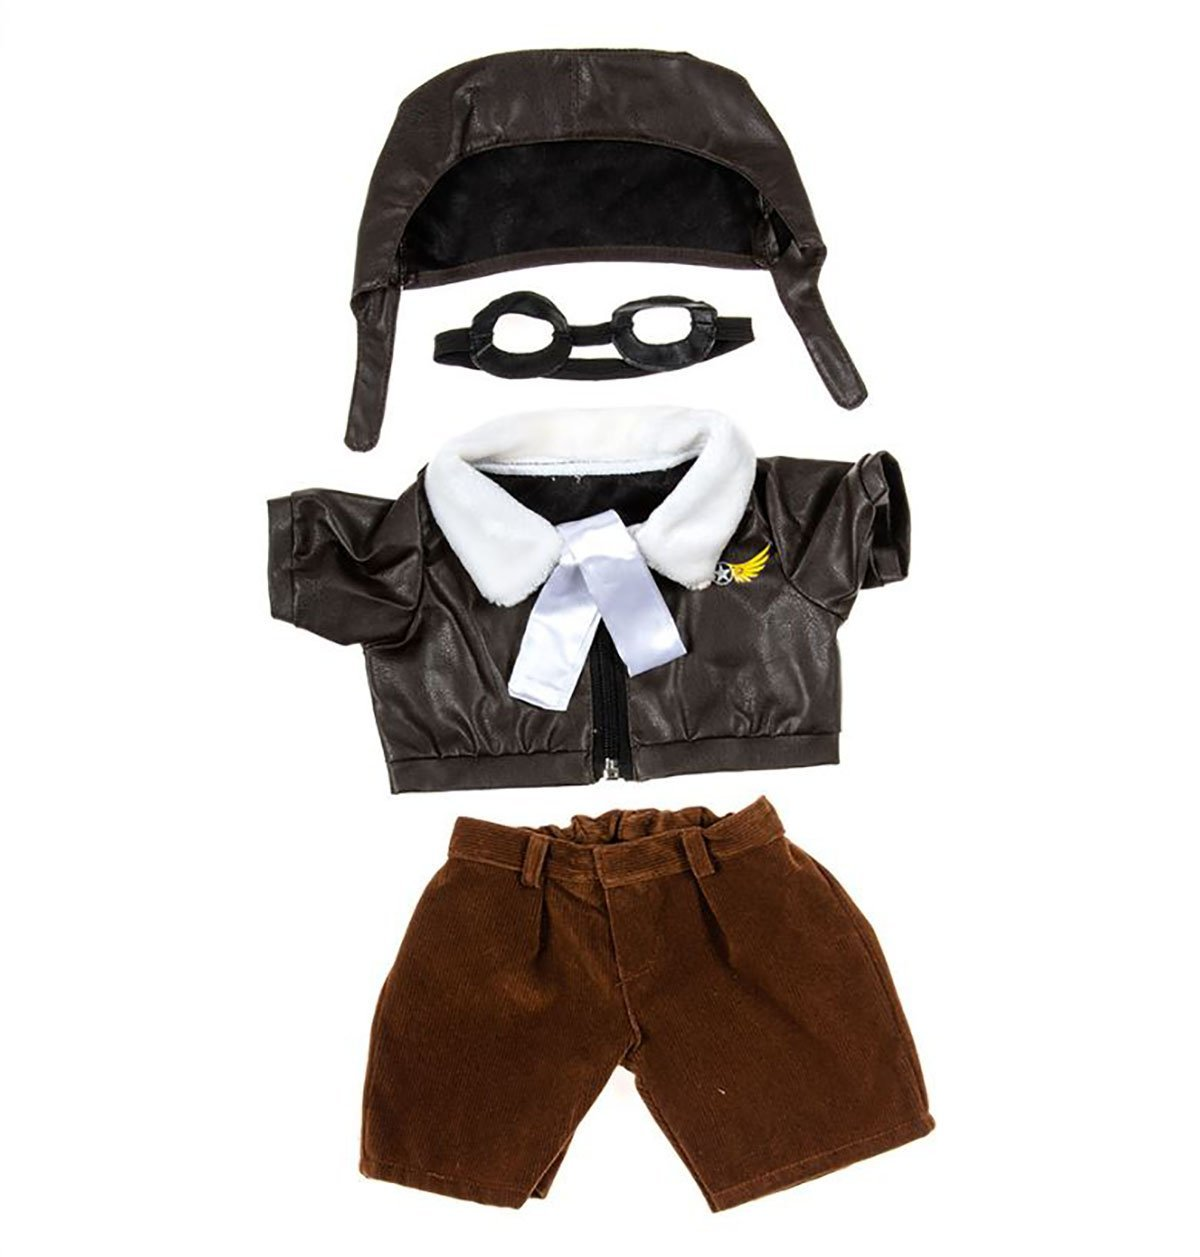 "Pilot Outfit with Goggles Teddy Bear Clothes Fits Most 14"" 18"" Build-a-bear,... by Bear Factory"